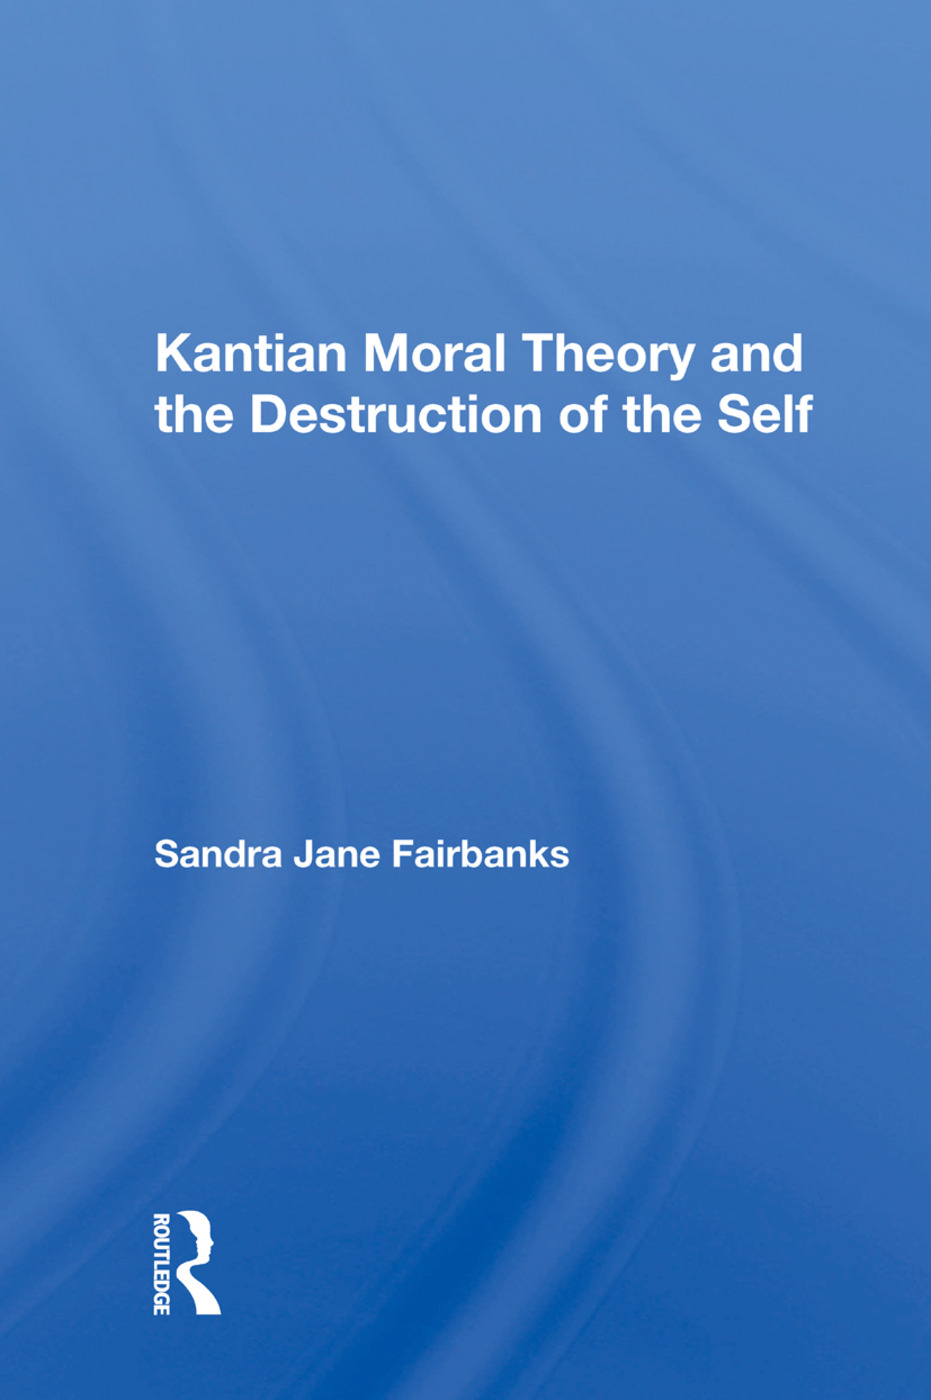 Kantian Moral Theory and the Destruction of the Self